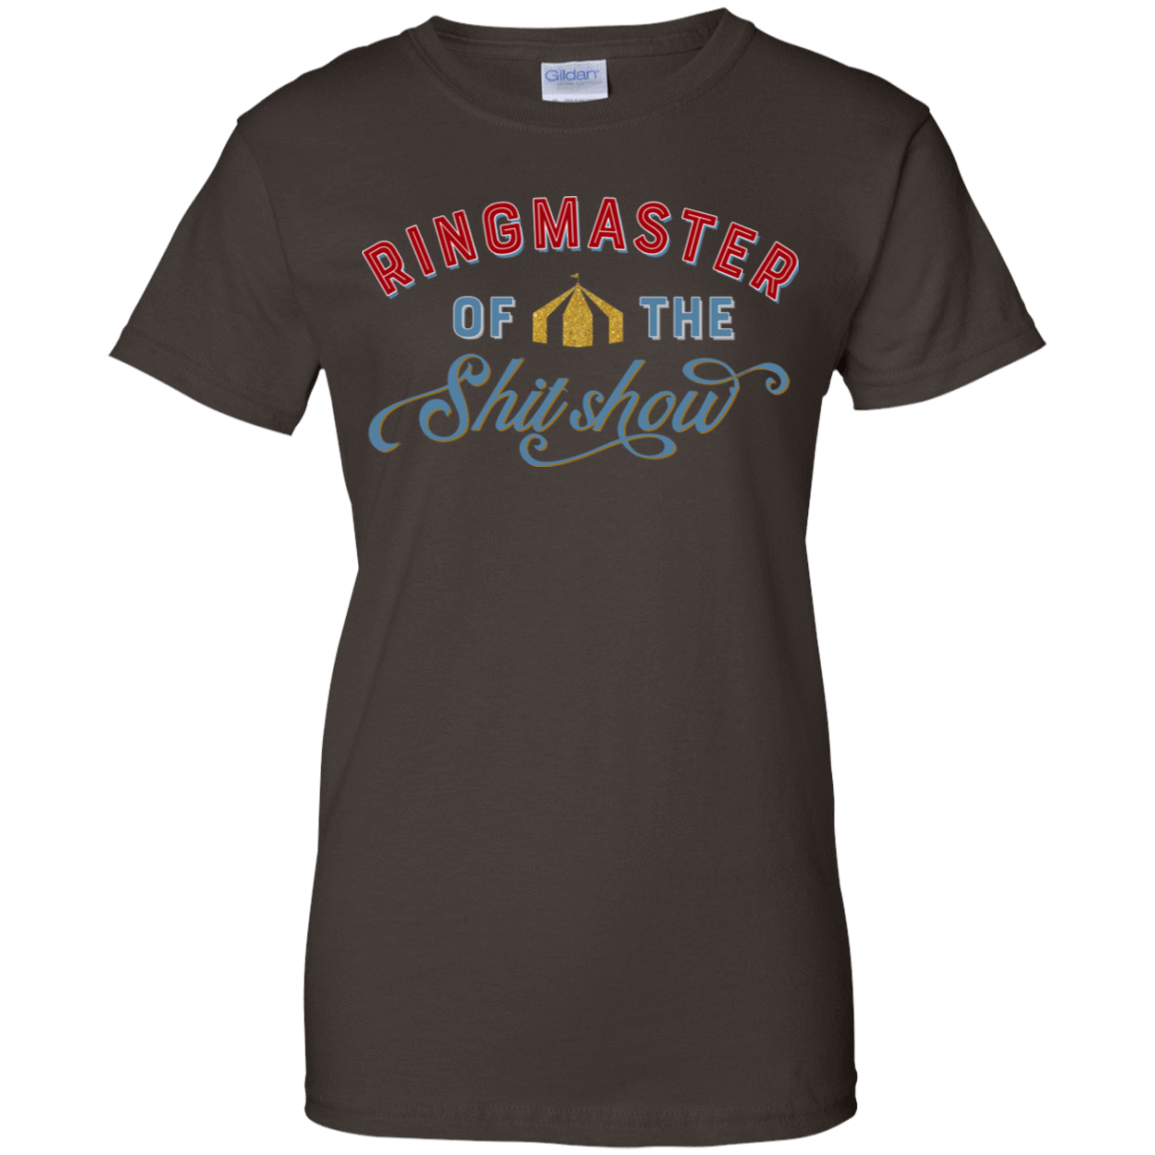 Ringmaster Of The Shit Show T-Shirts, Hoodie, Tank 939-9251-77675120-44702 - Tee Ript